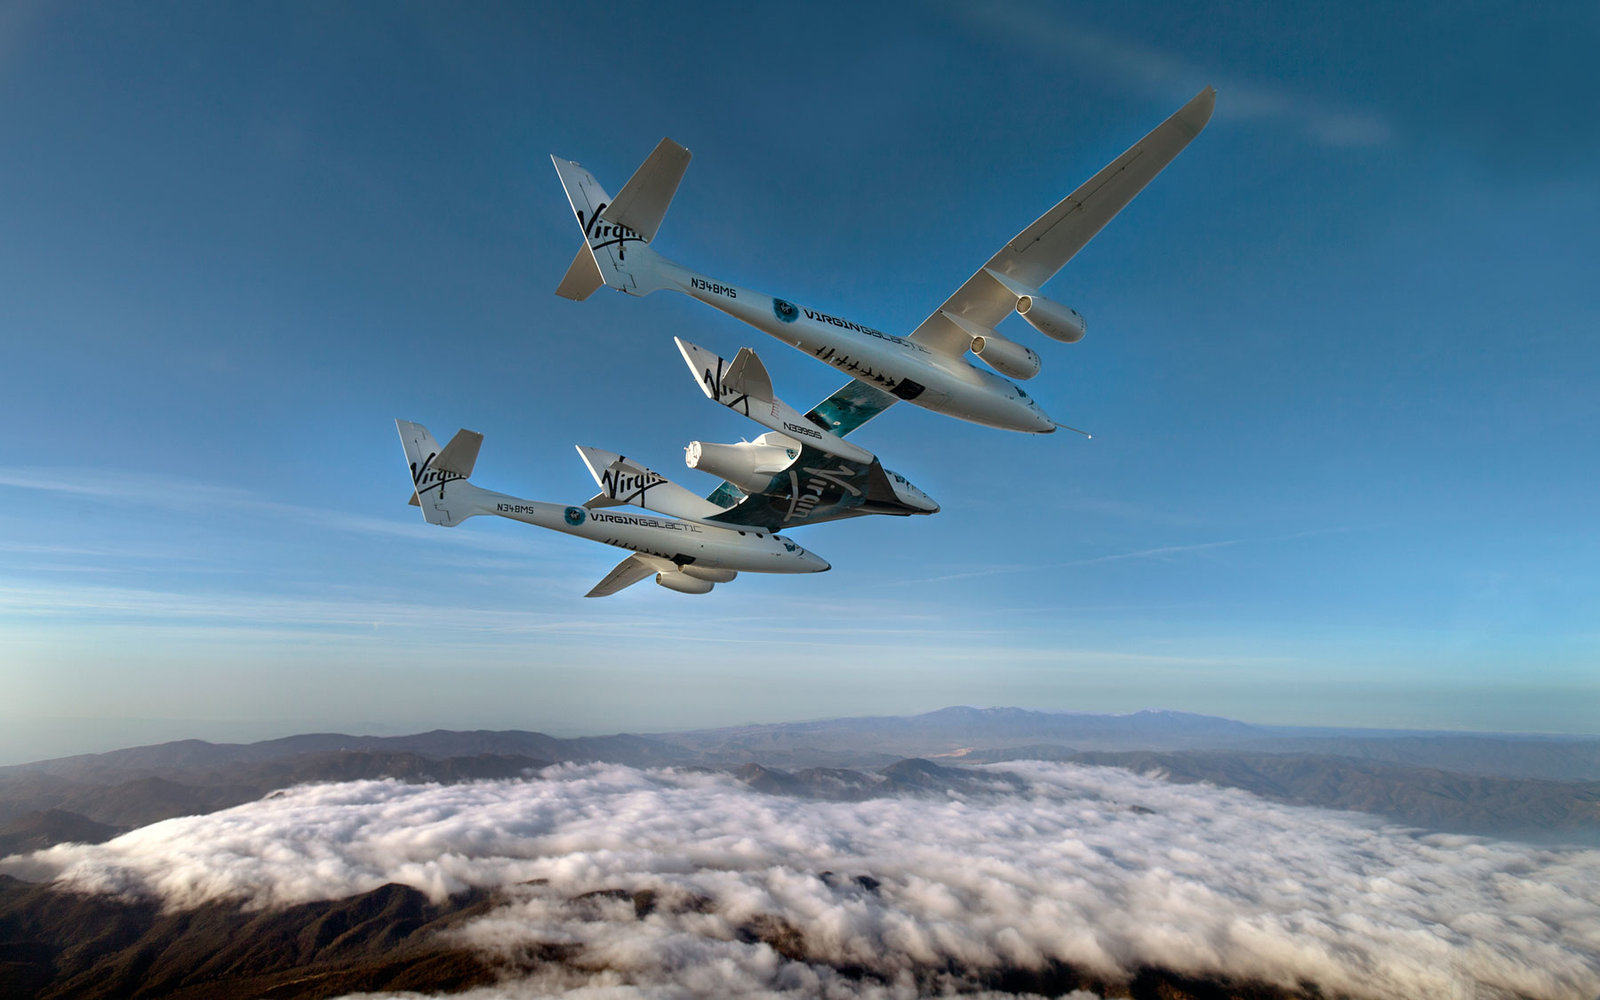 SpaceShipTwo and WhiteKnightTwo during a glide flight.